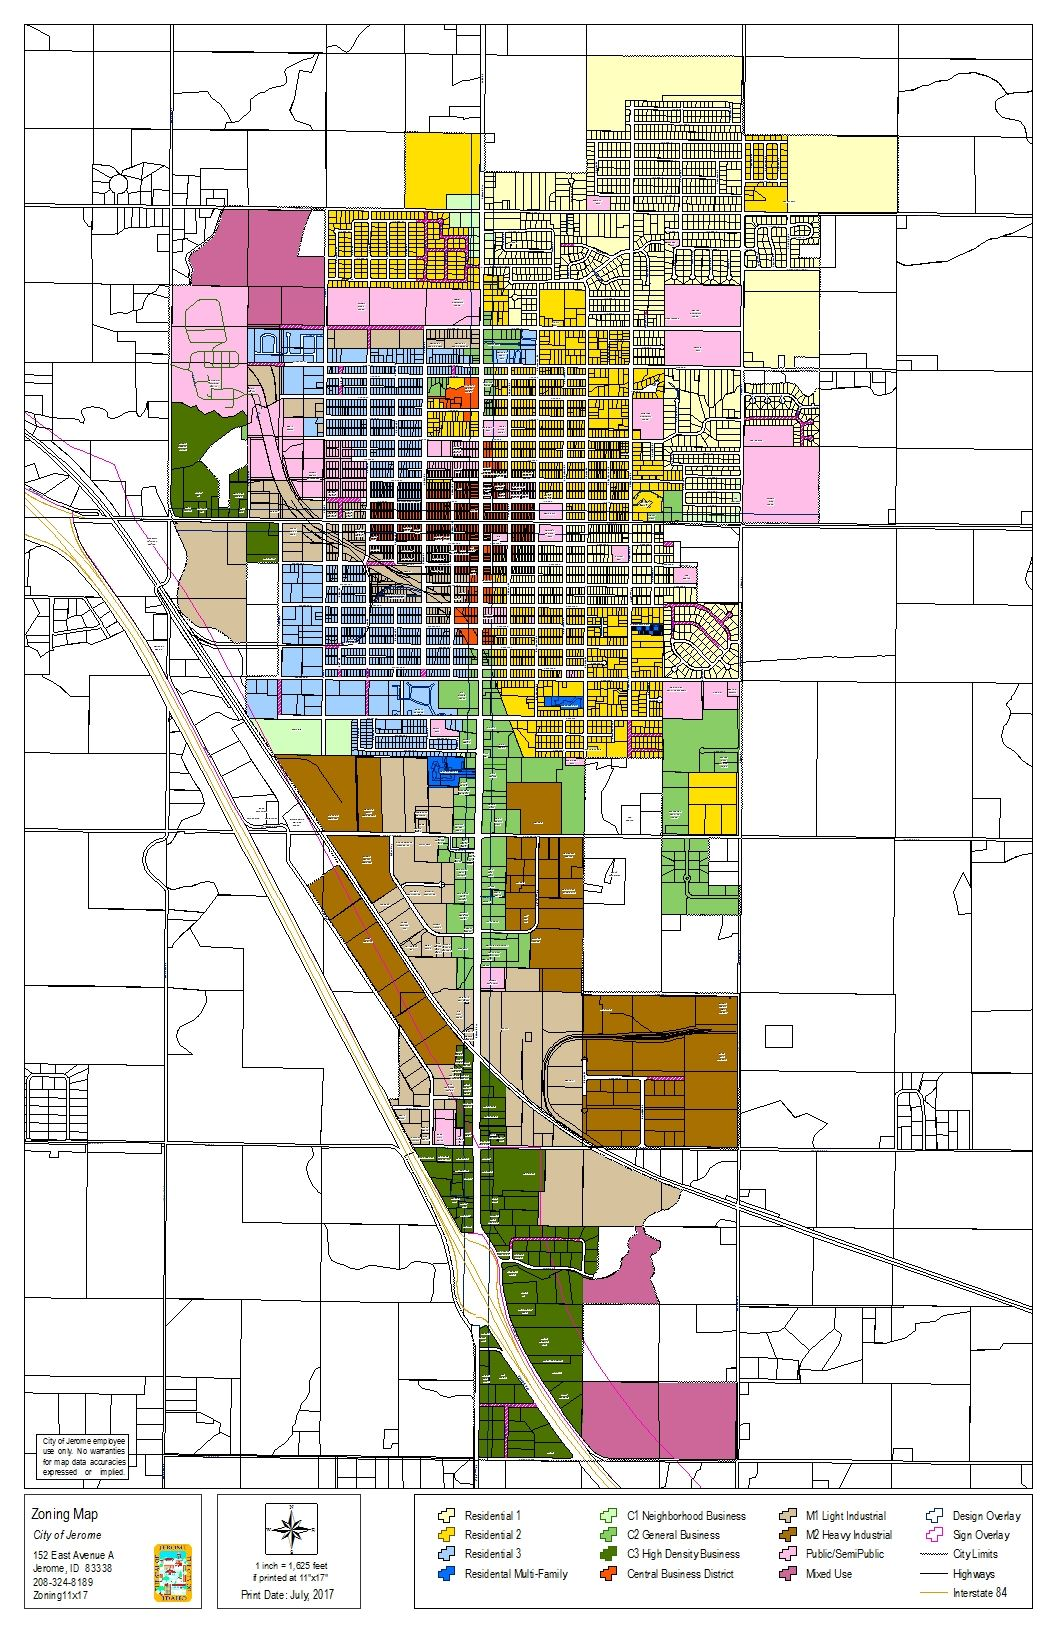 Jerome Zoning Map (PDF)